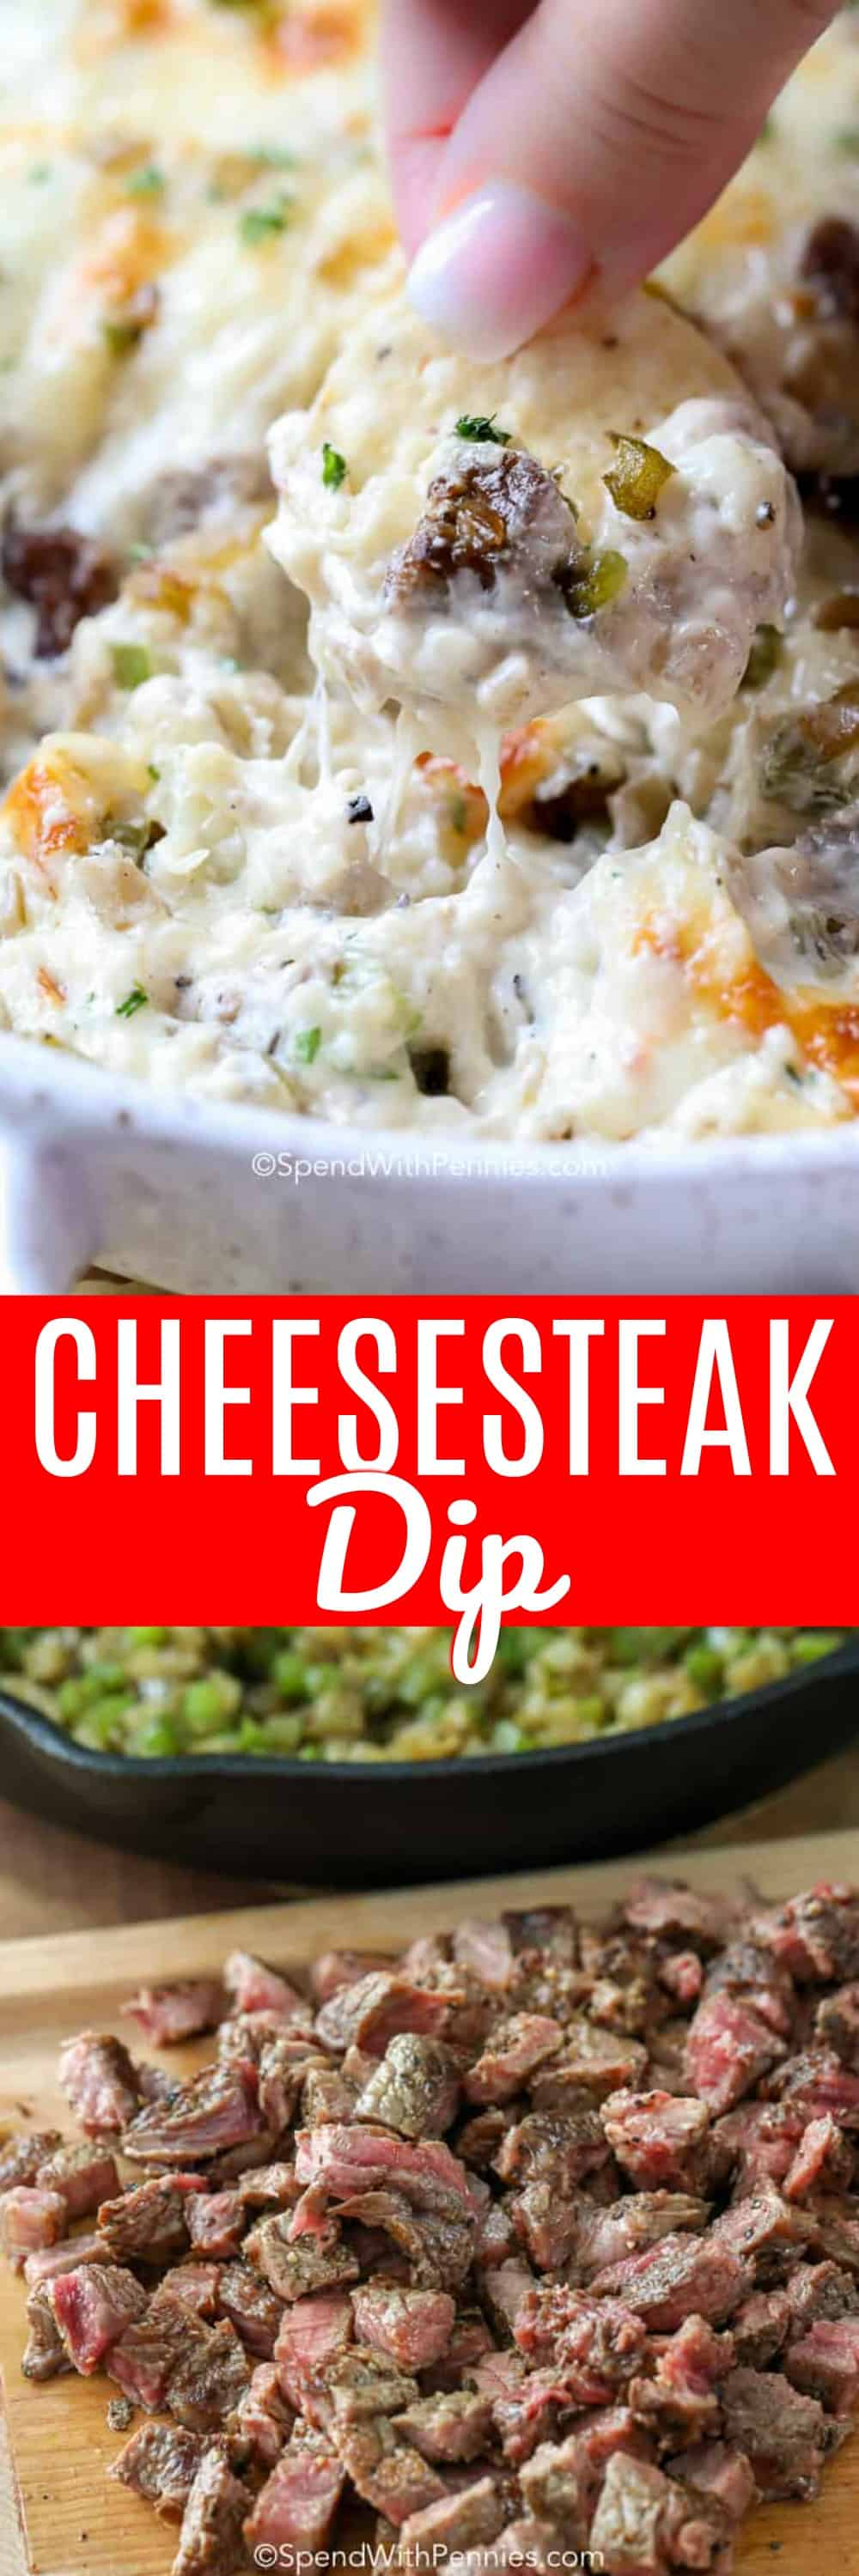 This Philly cheesesteak dip is perfect for game day. It's cheesy, and filled with beef and other delicious additions. We can't get enough of it! #spendwithpennies #cheeseteakdip #phillycheesesteakdip #dip #cheesedip #phillydip